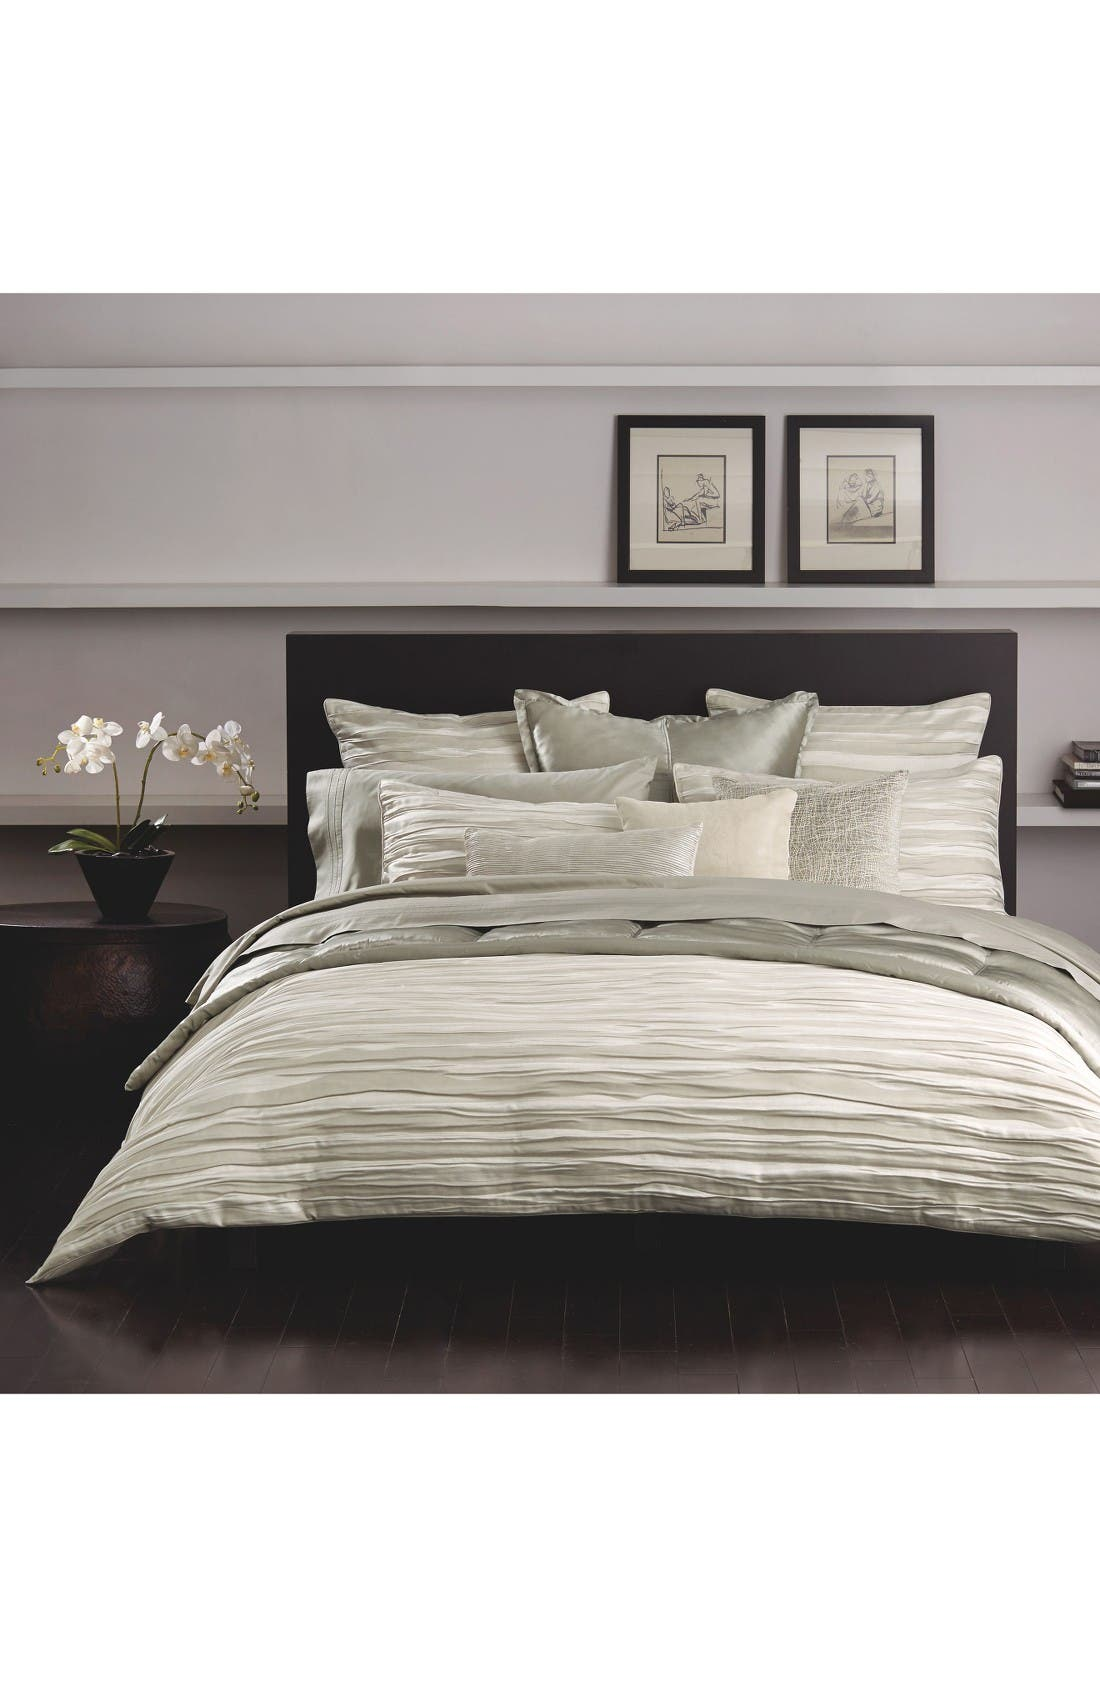 Donna Karan New York Tidal Bedding Collection